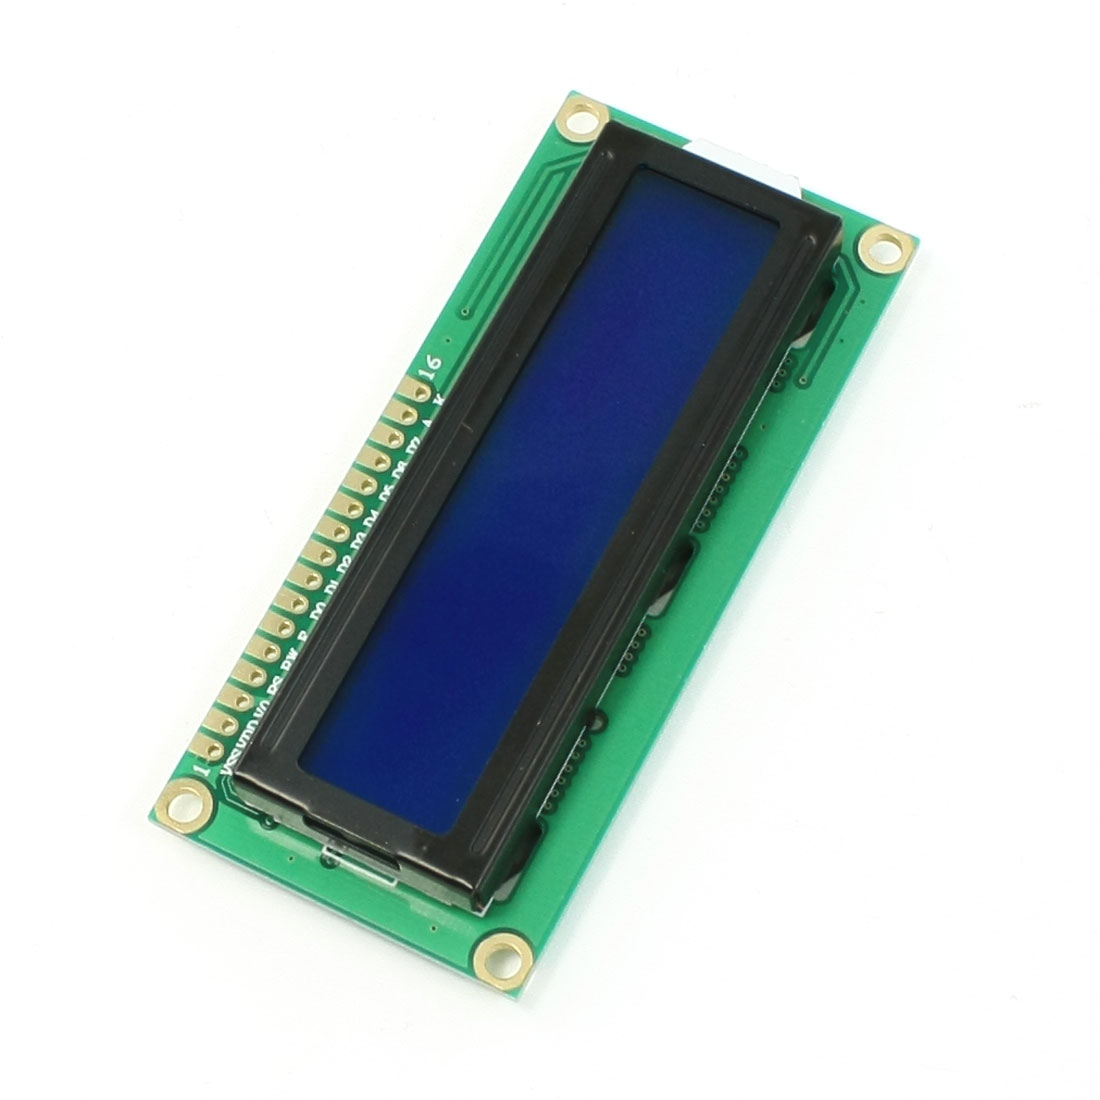 DC 5V Standard 16 x 2 Character Blue Backlight LCD Display Module Black Green